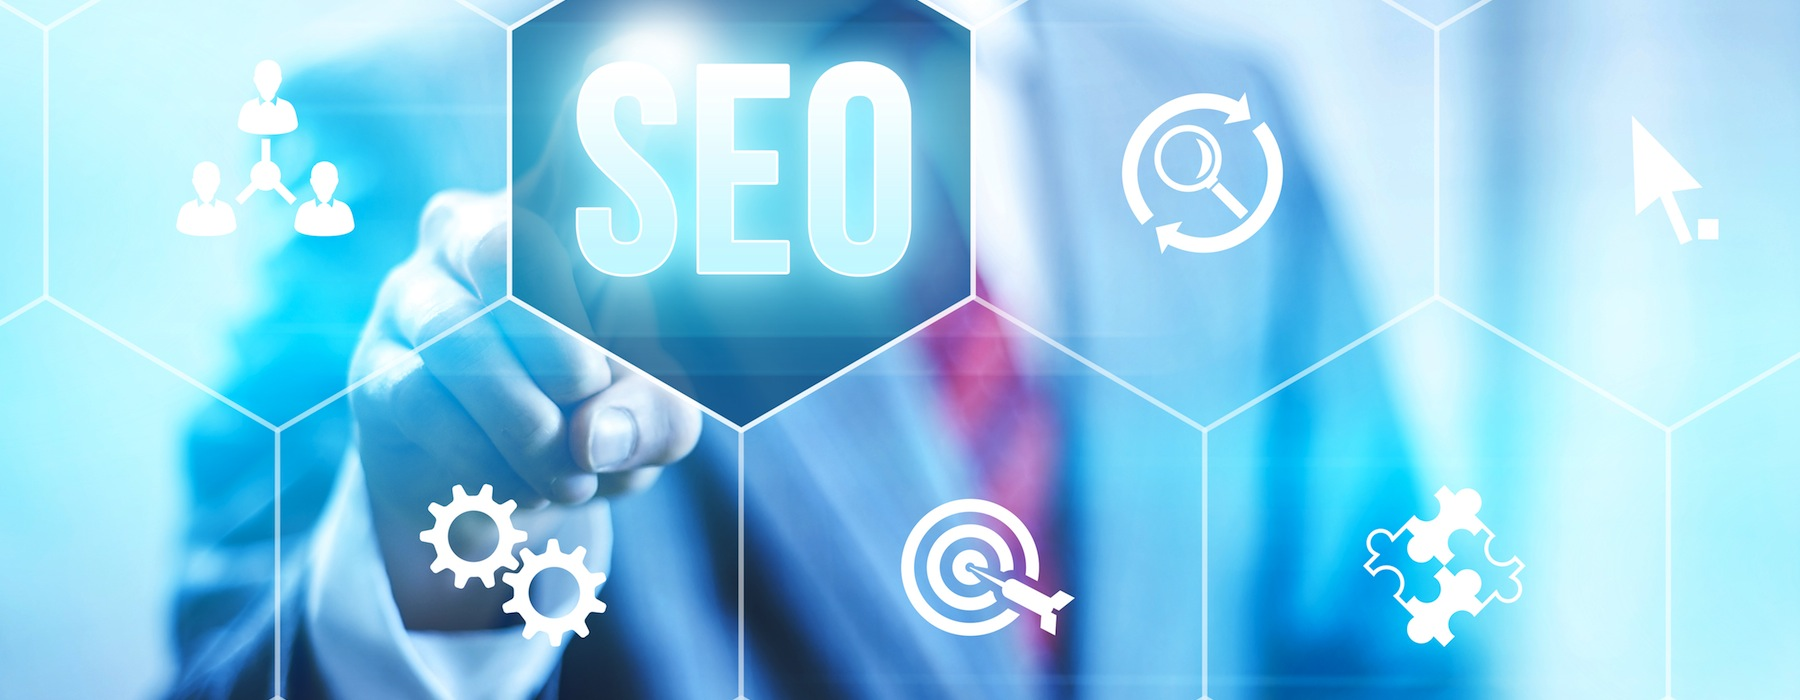 Search Engine Optimization | Search Engine Marketing | SEO SEM